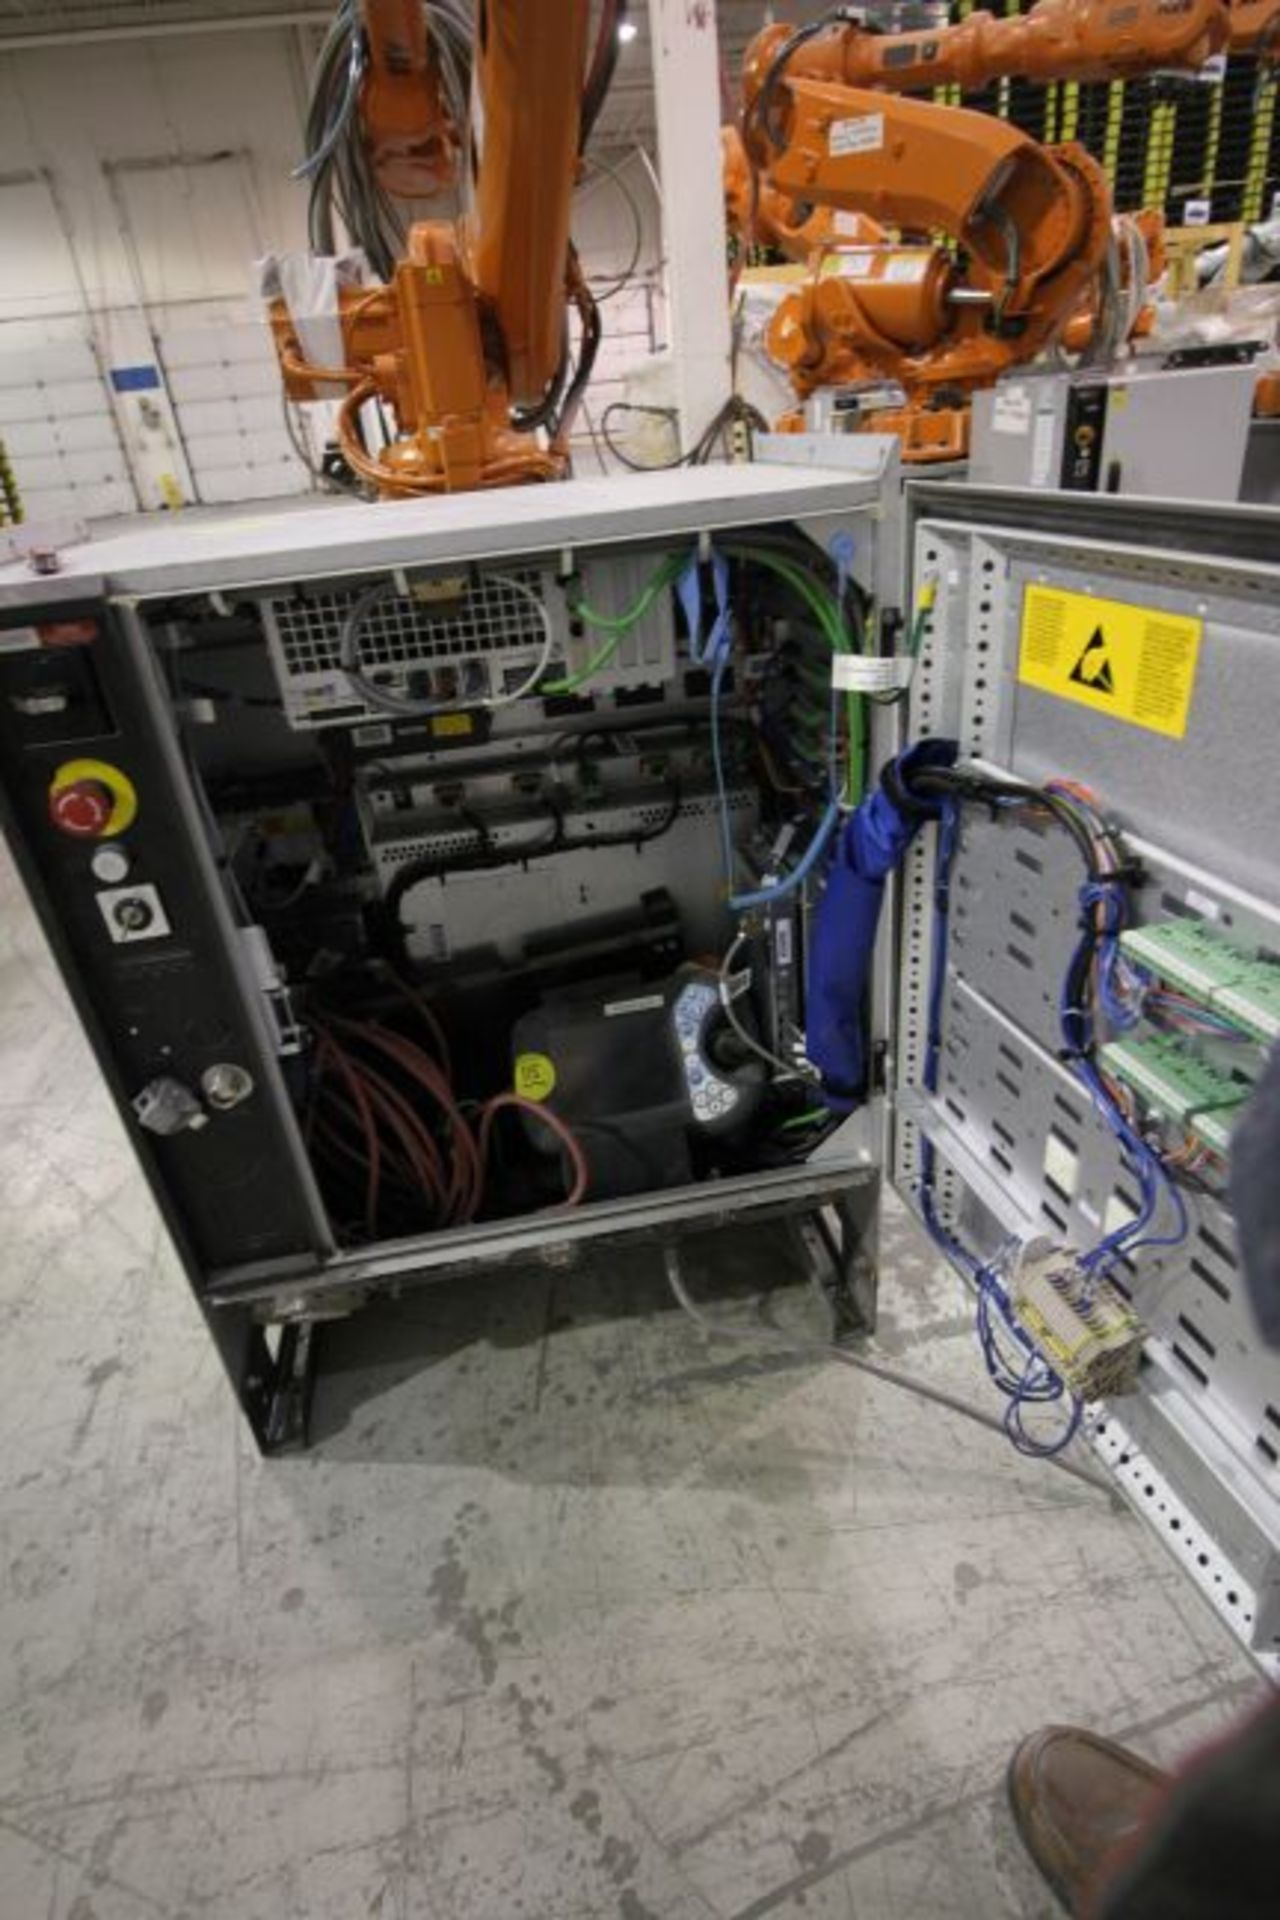 ABB ROBOT IRB 4600 2.55/40KG WITH IRC5 CONTROLS, YEAR 2014, SN 500798 TEACH PENDANT& CABLES - Image 6 of 9